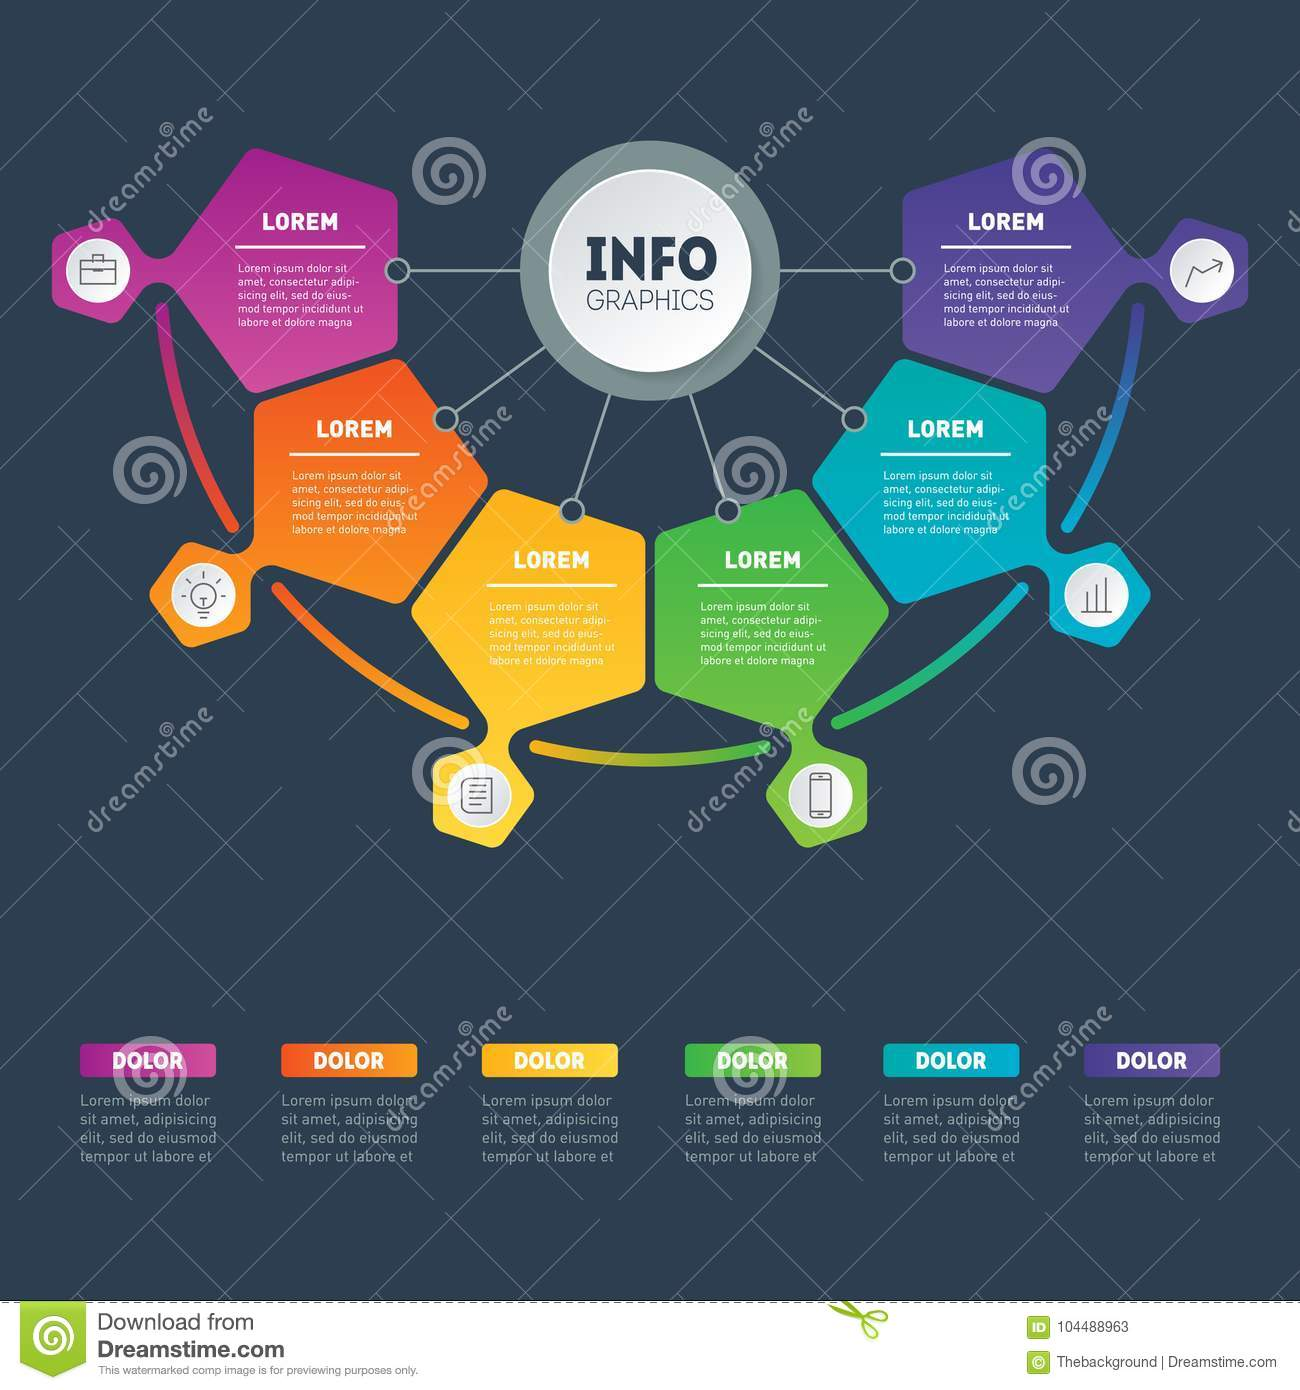 Website Site Map Examples: Business Presentation Or Infographic Examples With 6